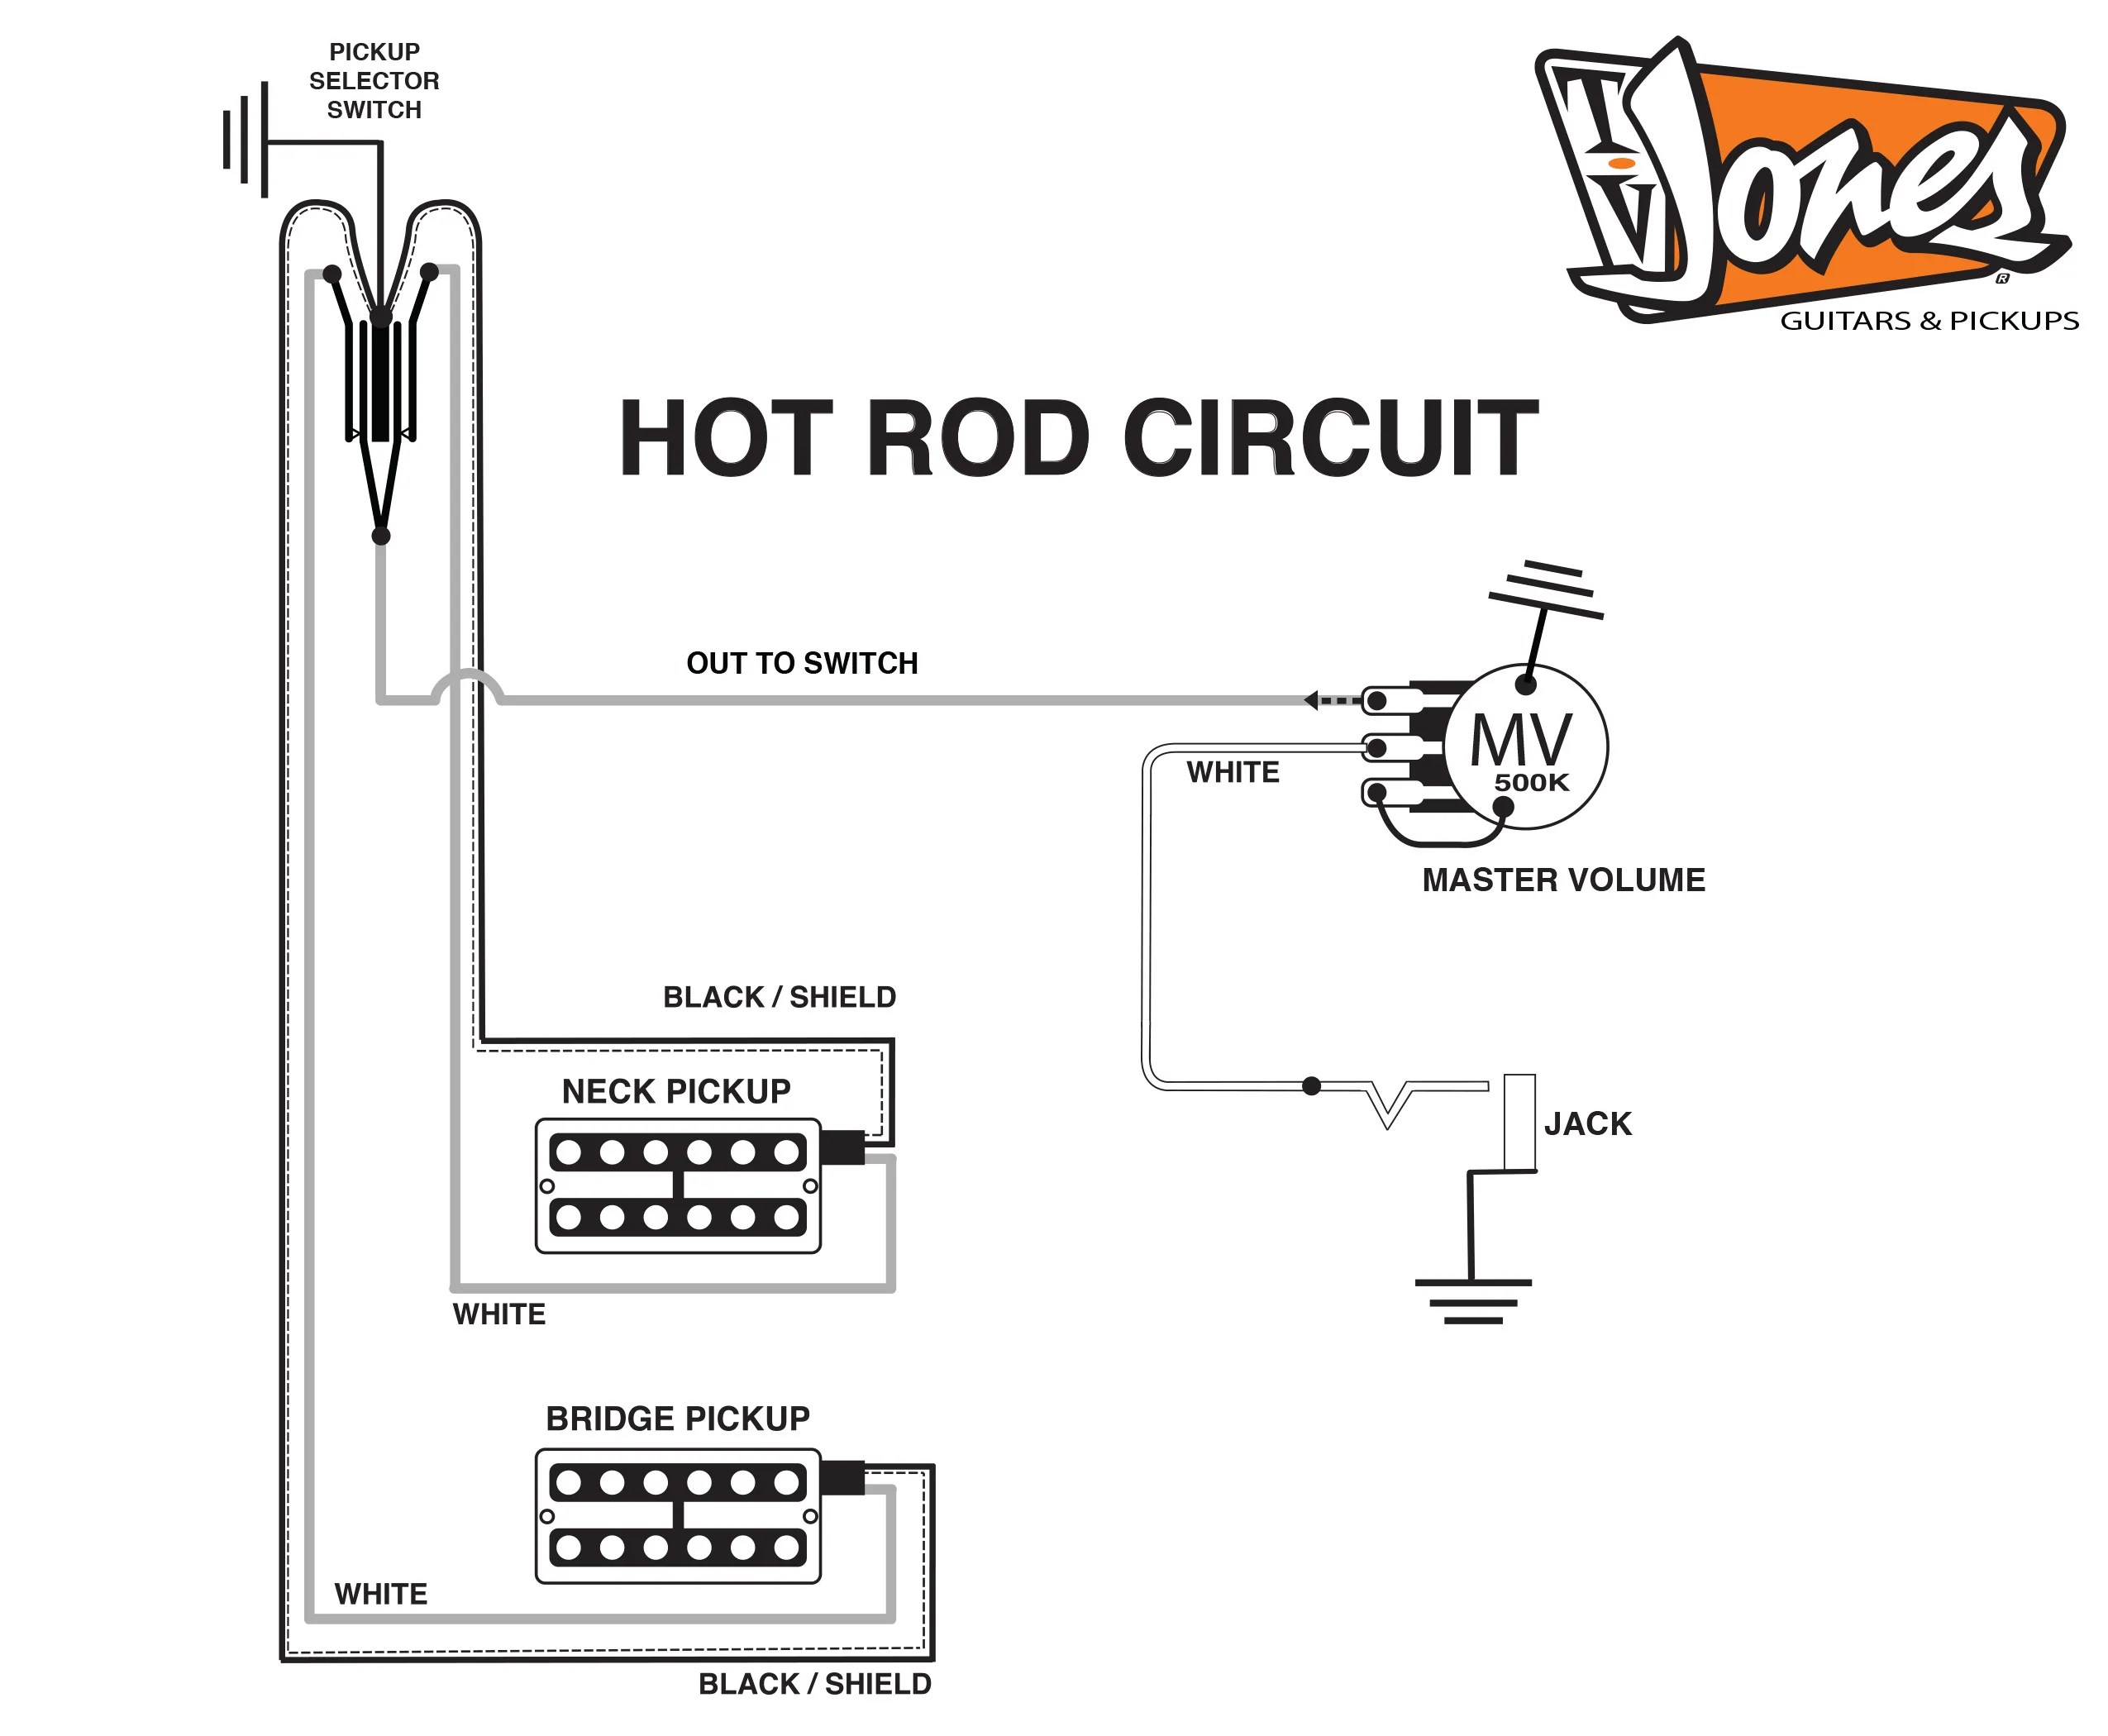 Mud switch broke; convert to hot rod wiring? : The